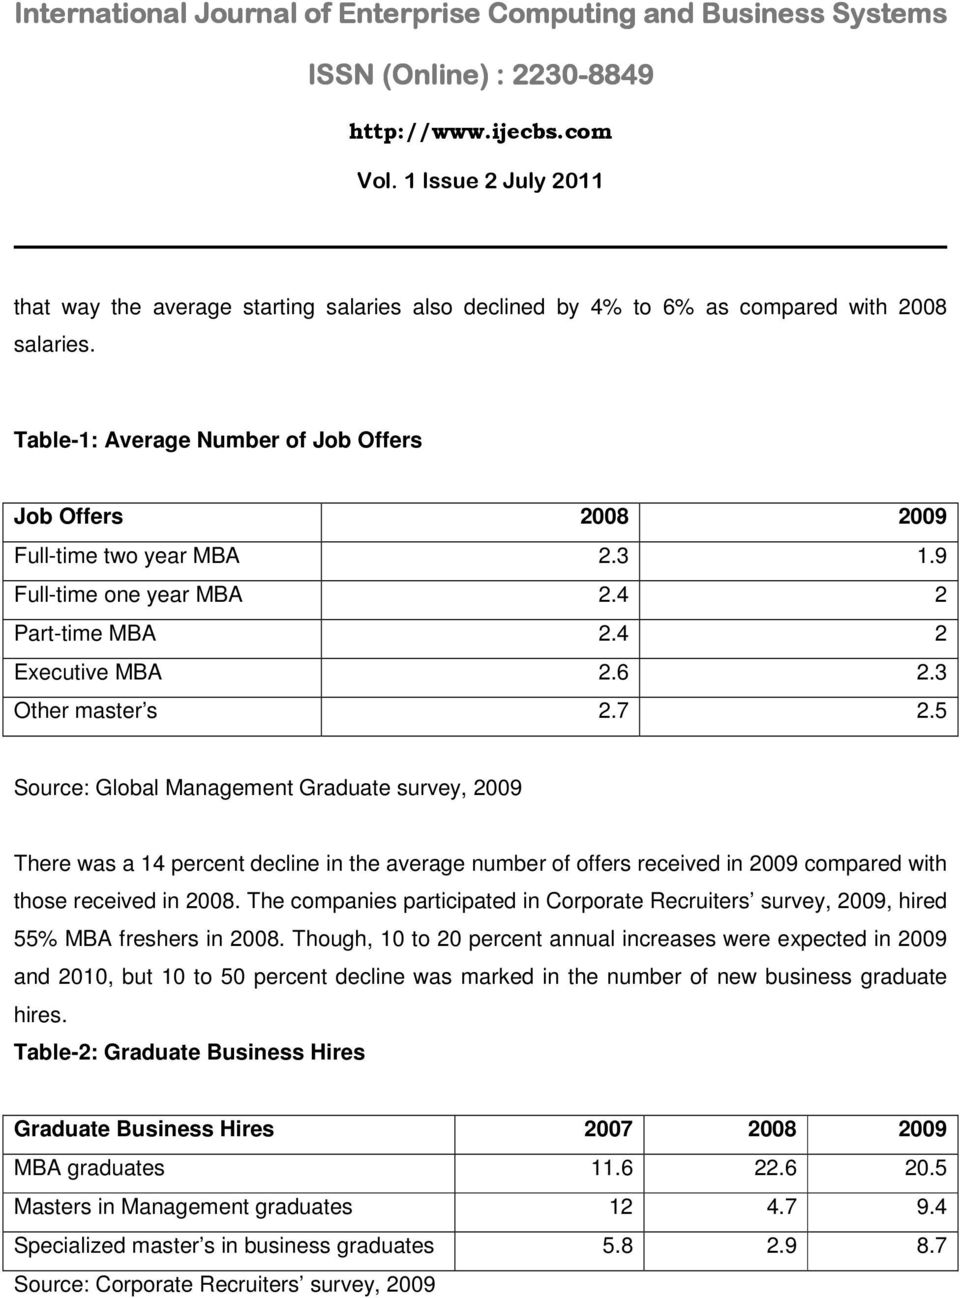 5 Source: Global Management Graduate survey, 2009 There was a 14 percent decline in the average number of offers received in 2009 compared with those received in 2008.